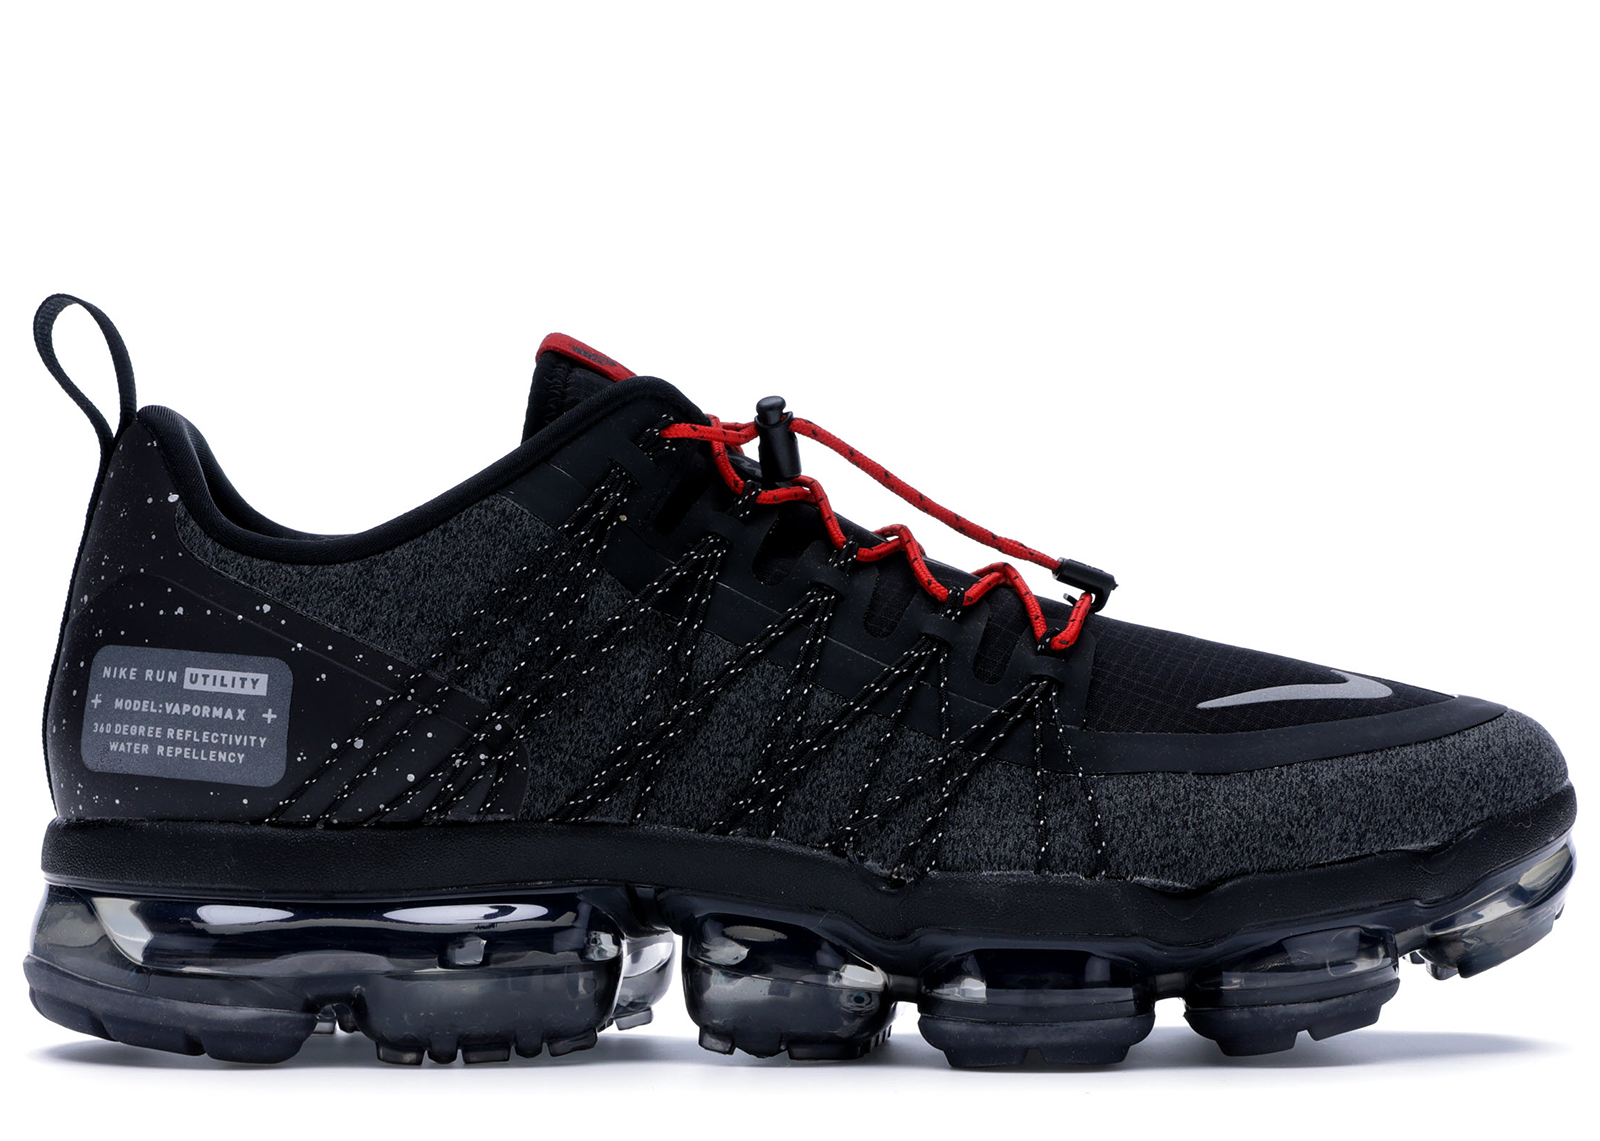 Deadstock Air Shoesamp; Nike Sneakers Buy Vapormax Max g6vYyb7f